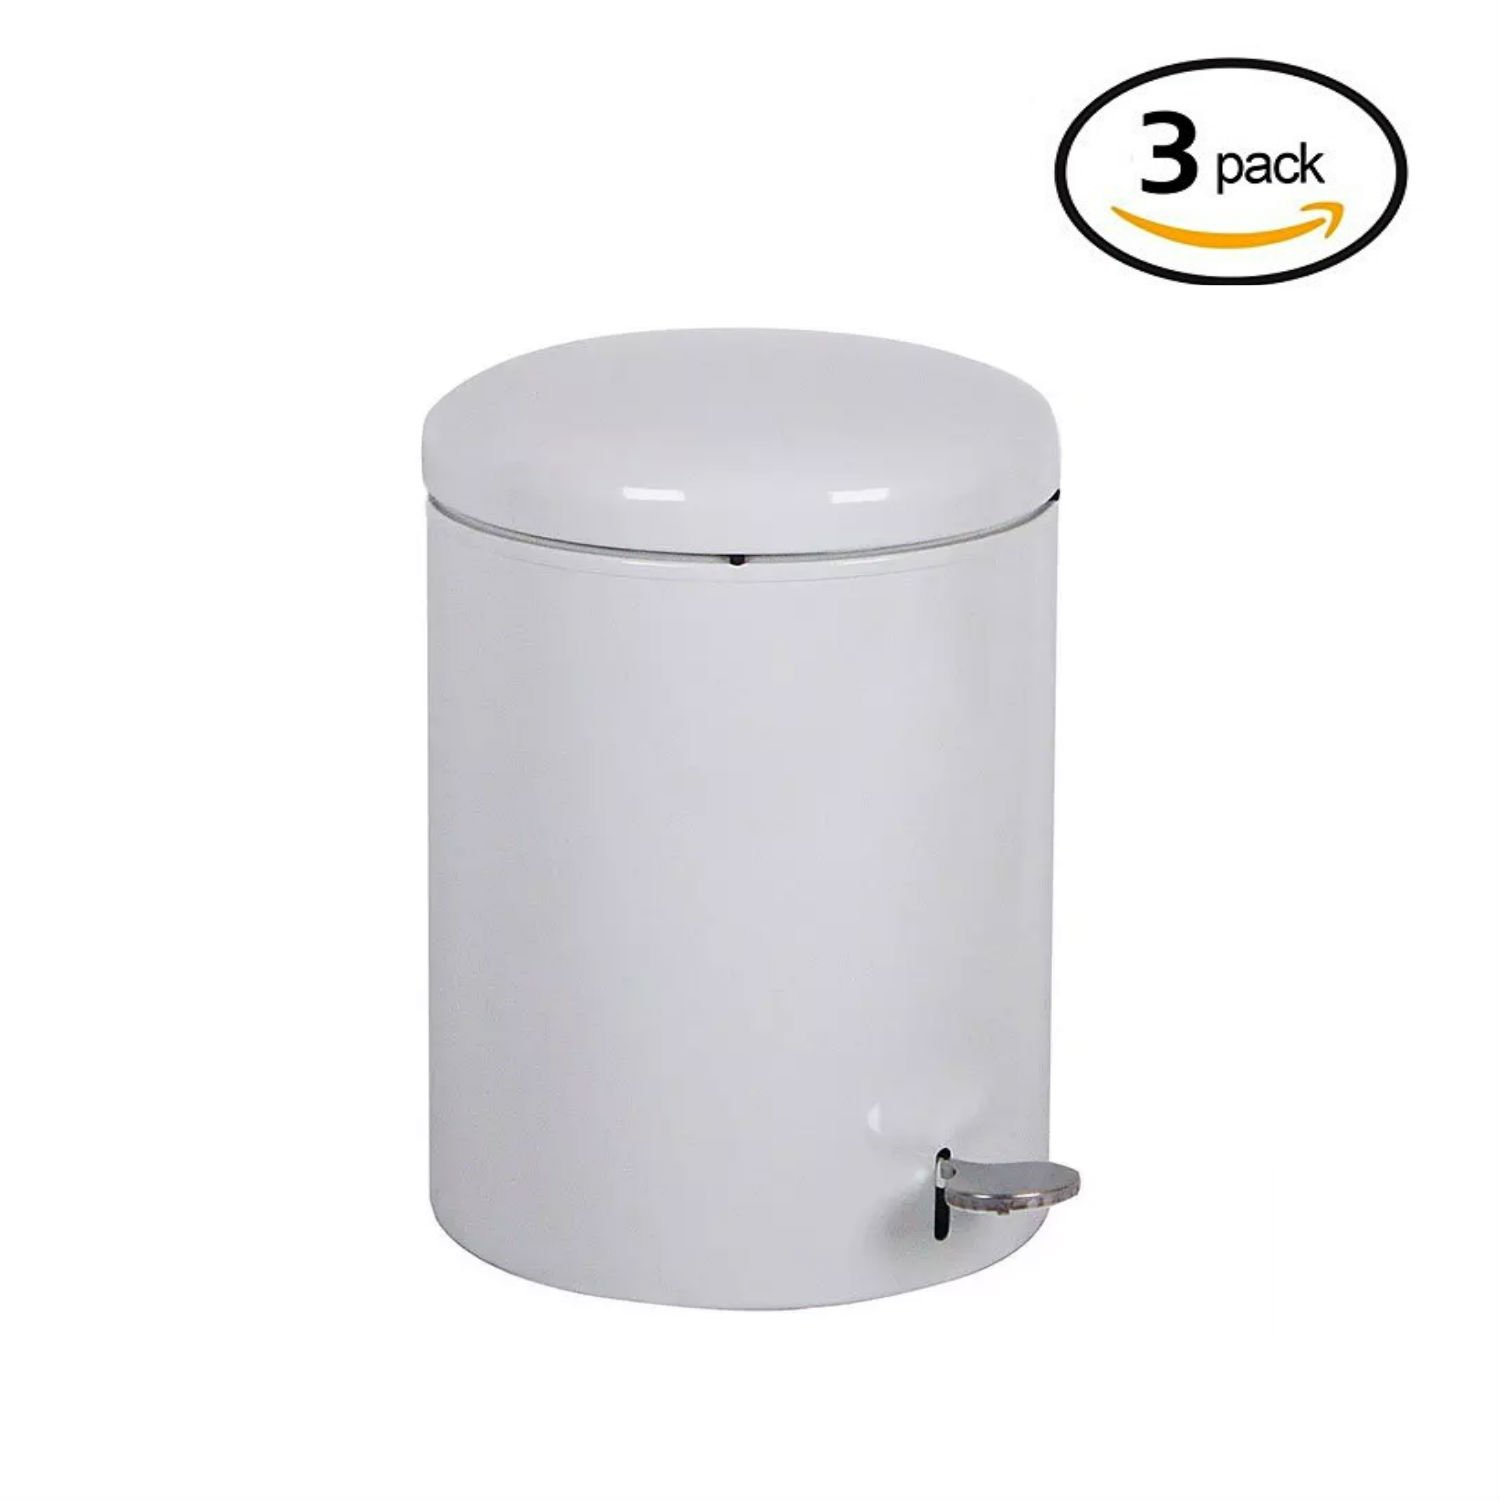 Witt 2240WH Stainless Steel Step On Metal Biohazard Waste Container, 4gal Capacity, 11-1/2 Diameter x 16'' Height, White (Set of 3)